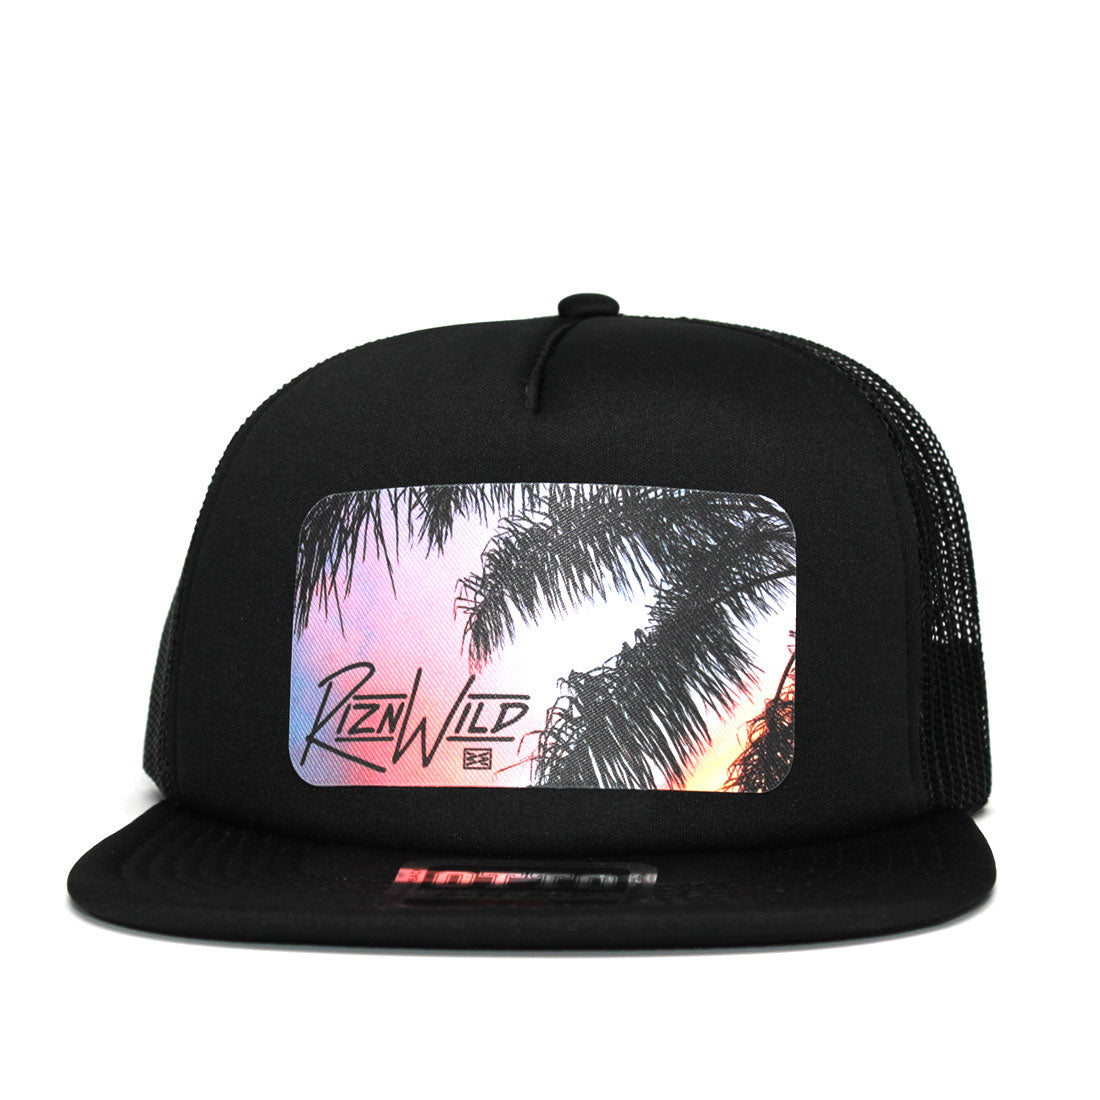 RIZNWILD | Sunset and palm tree colorful patch design on a truck hat